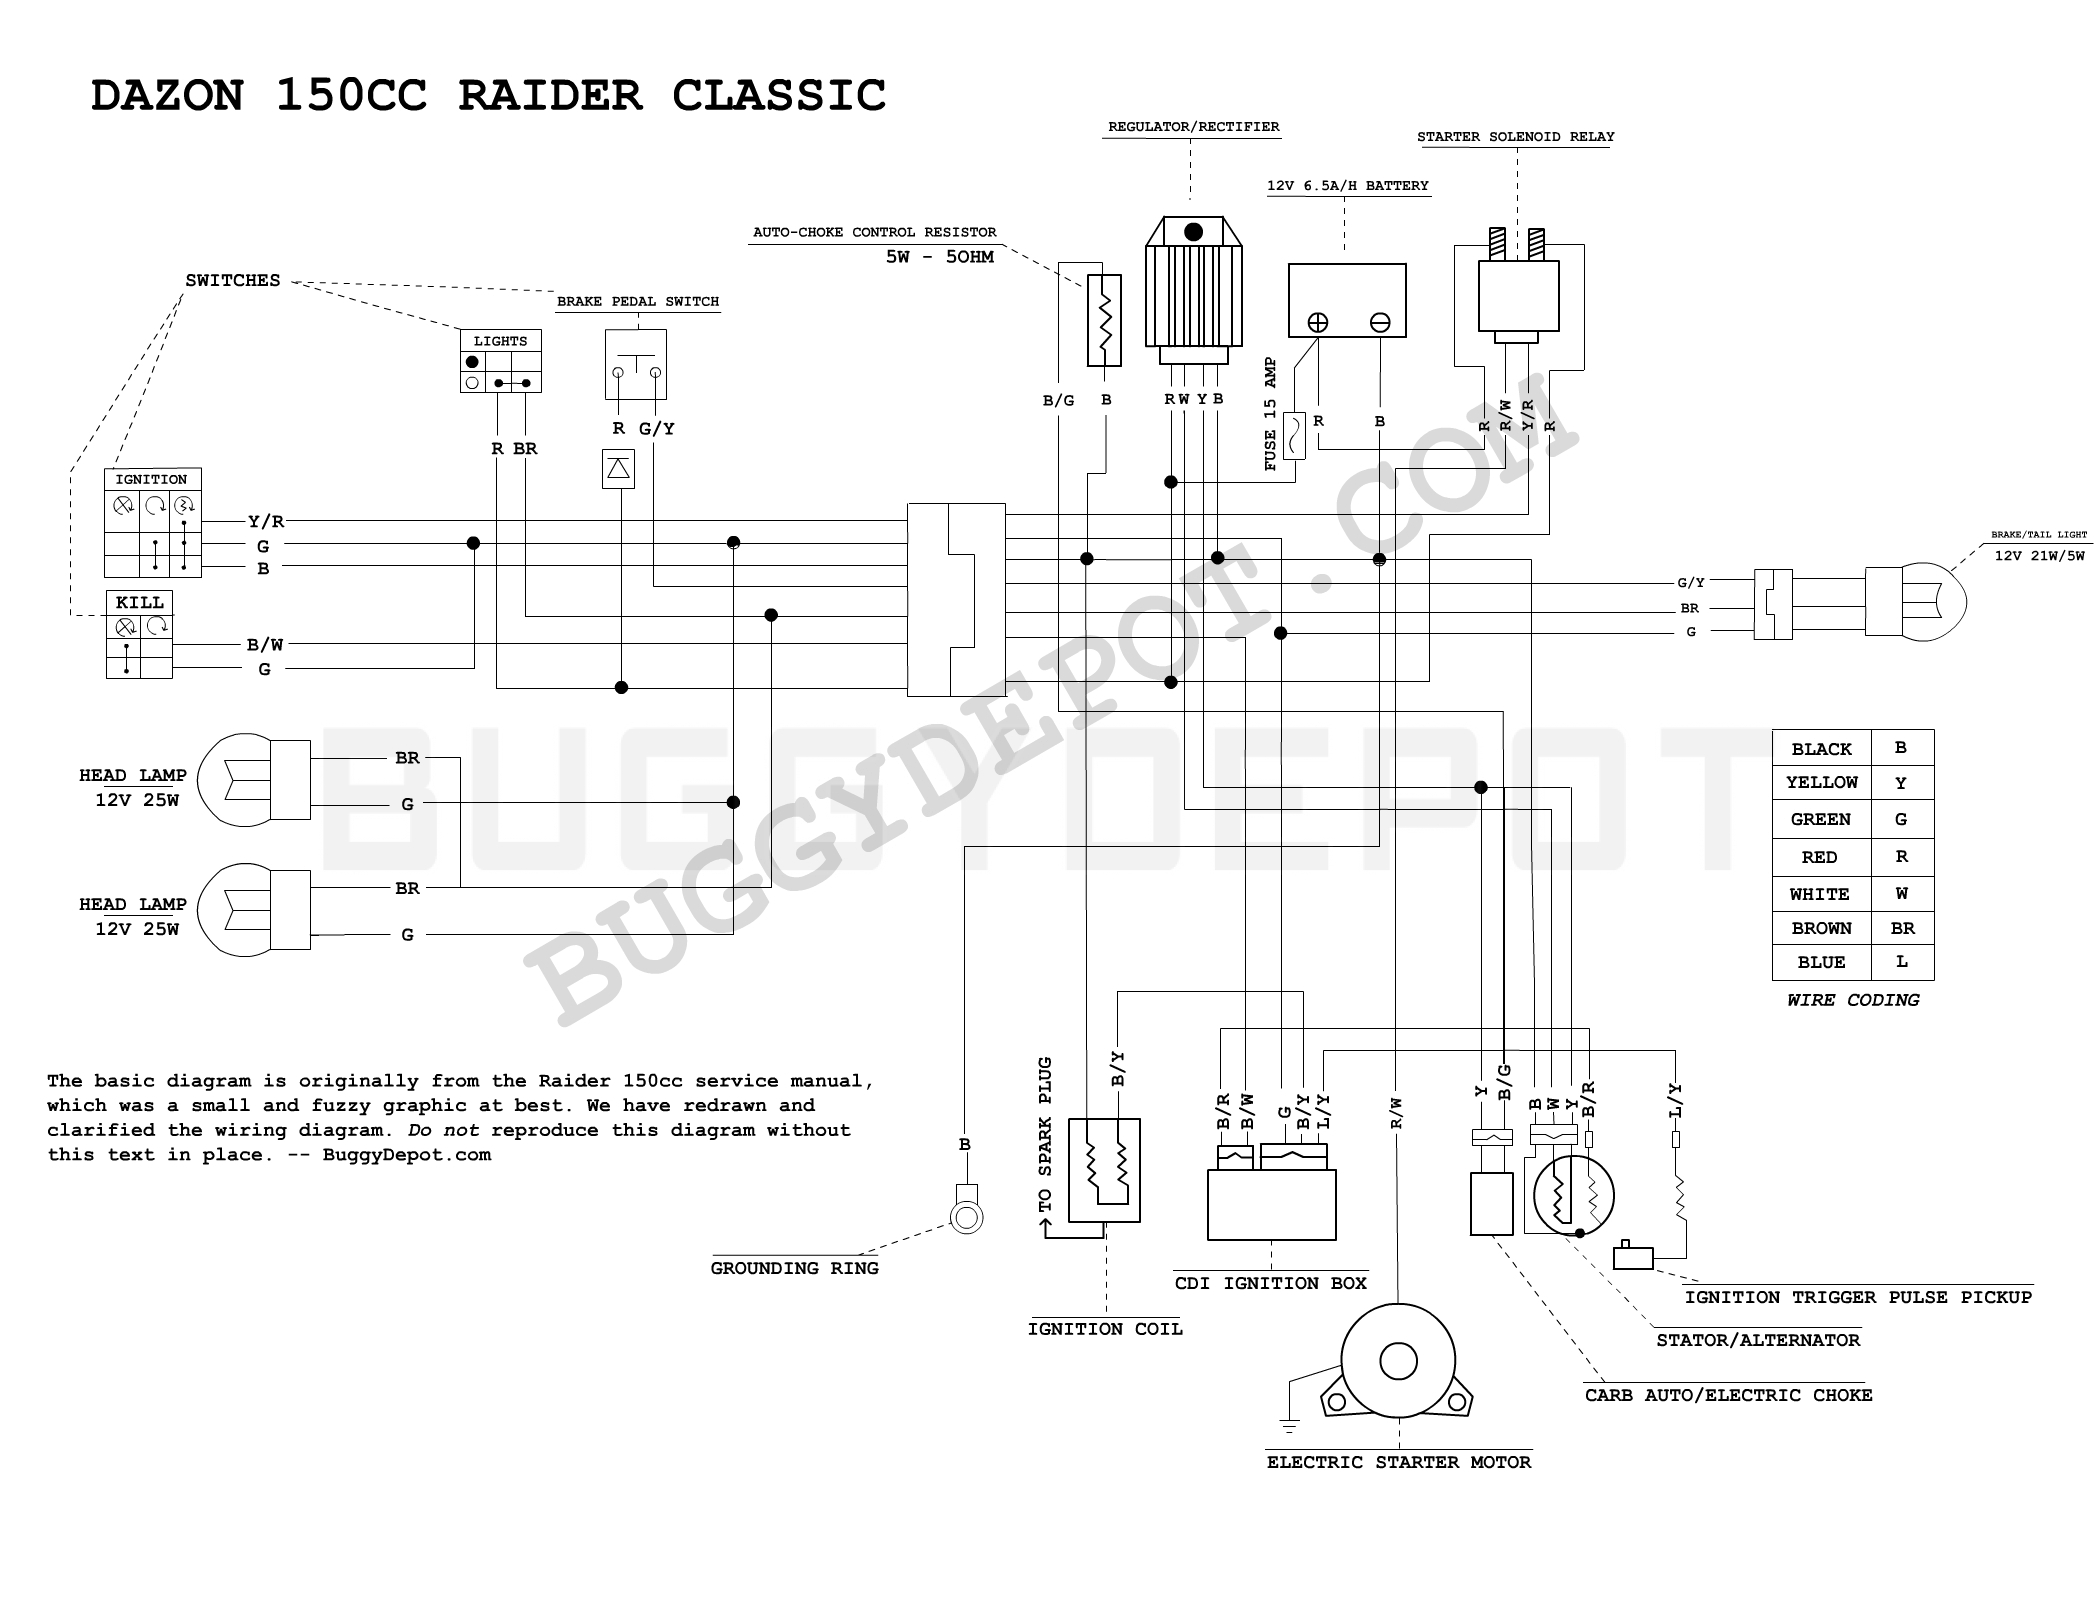 03 Big Dog Wiring Diagram - Wiring Diagram Data Big Dog Wiring Schematic Diagram on big dog electrical diagram, 2005 texas chopper diagram, big dog efi diagram, motorcycle starter circuit diagram, big dog engine diagram, big red wiring-diagram, big three upgrade diagram, big dog motorcycle wiring schematic, thunderheart wire diagram, big dog ehc schematic, mini stroke moped engine diagram, big tex dump trailer wiring diagram, big dog ignition diagram,